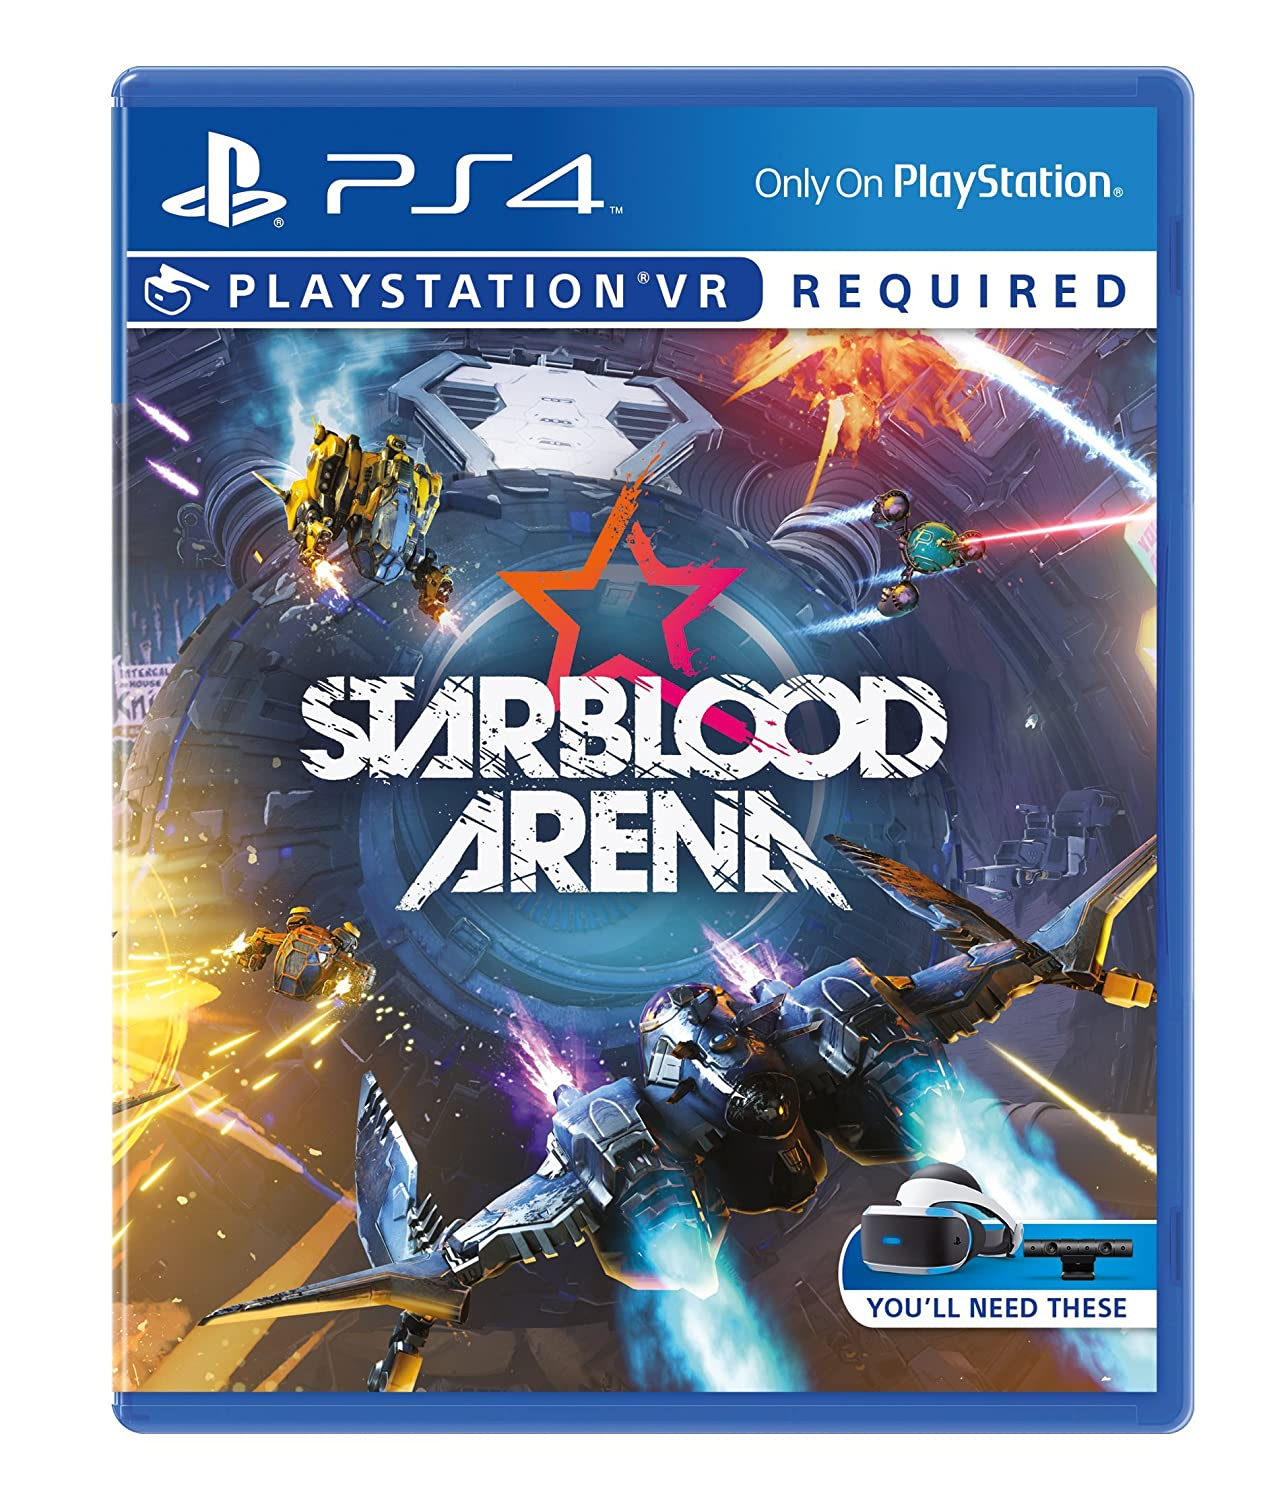 Starblood Arena VR amazon